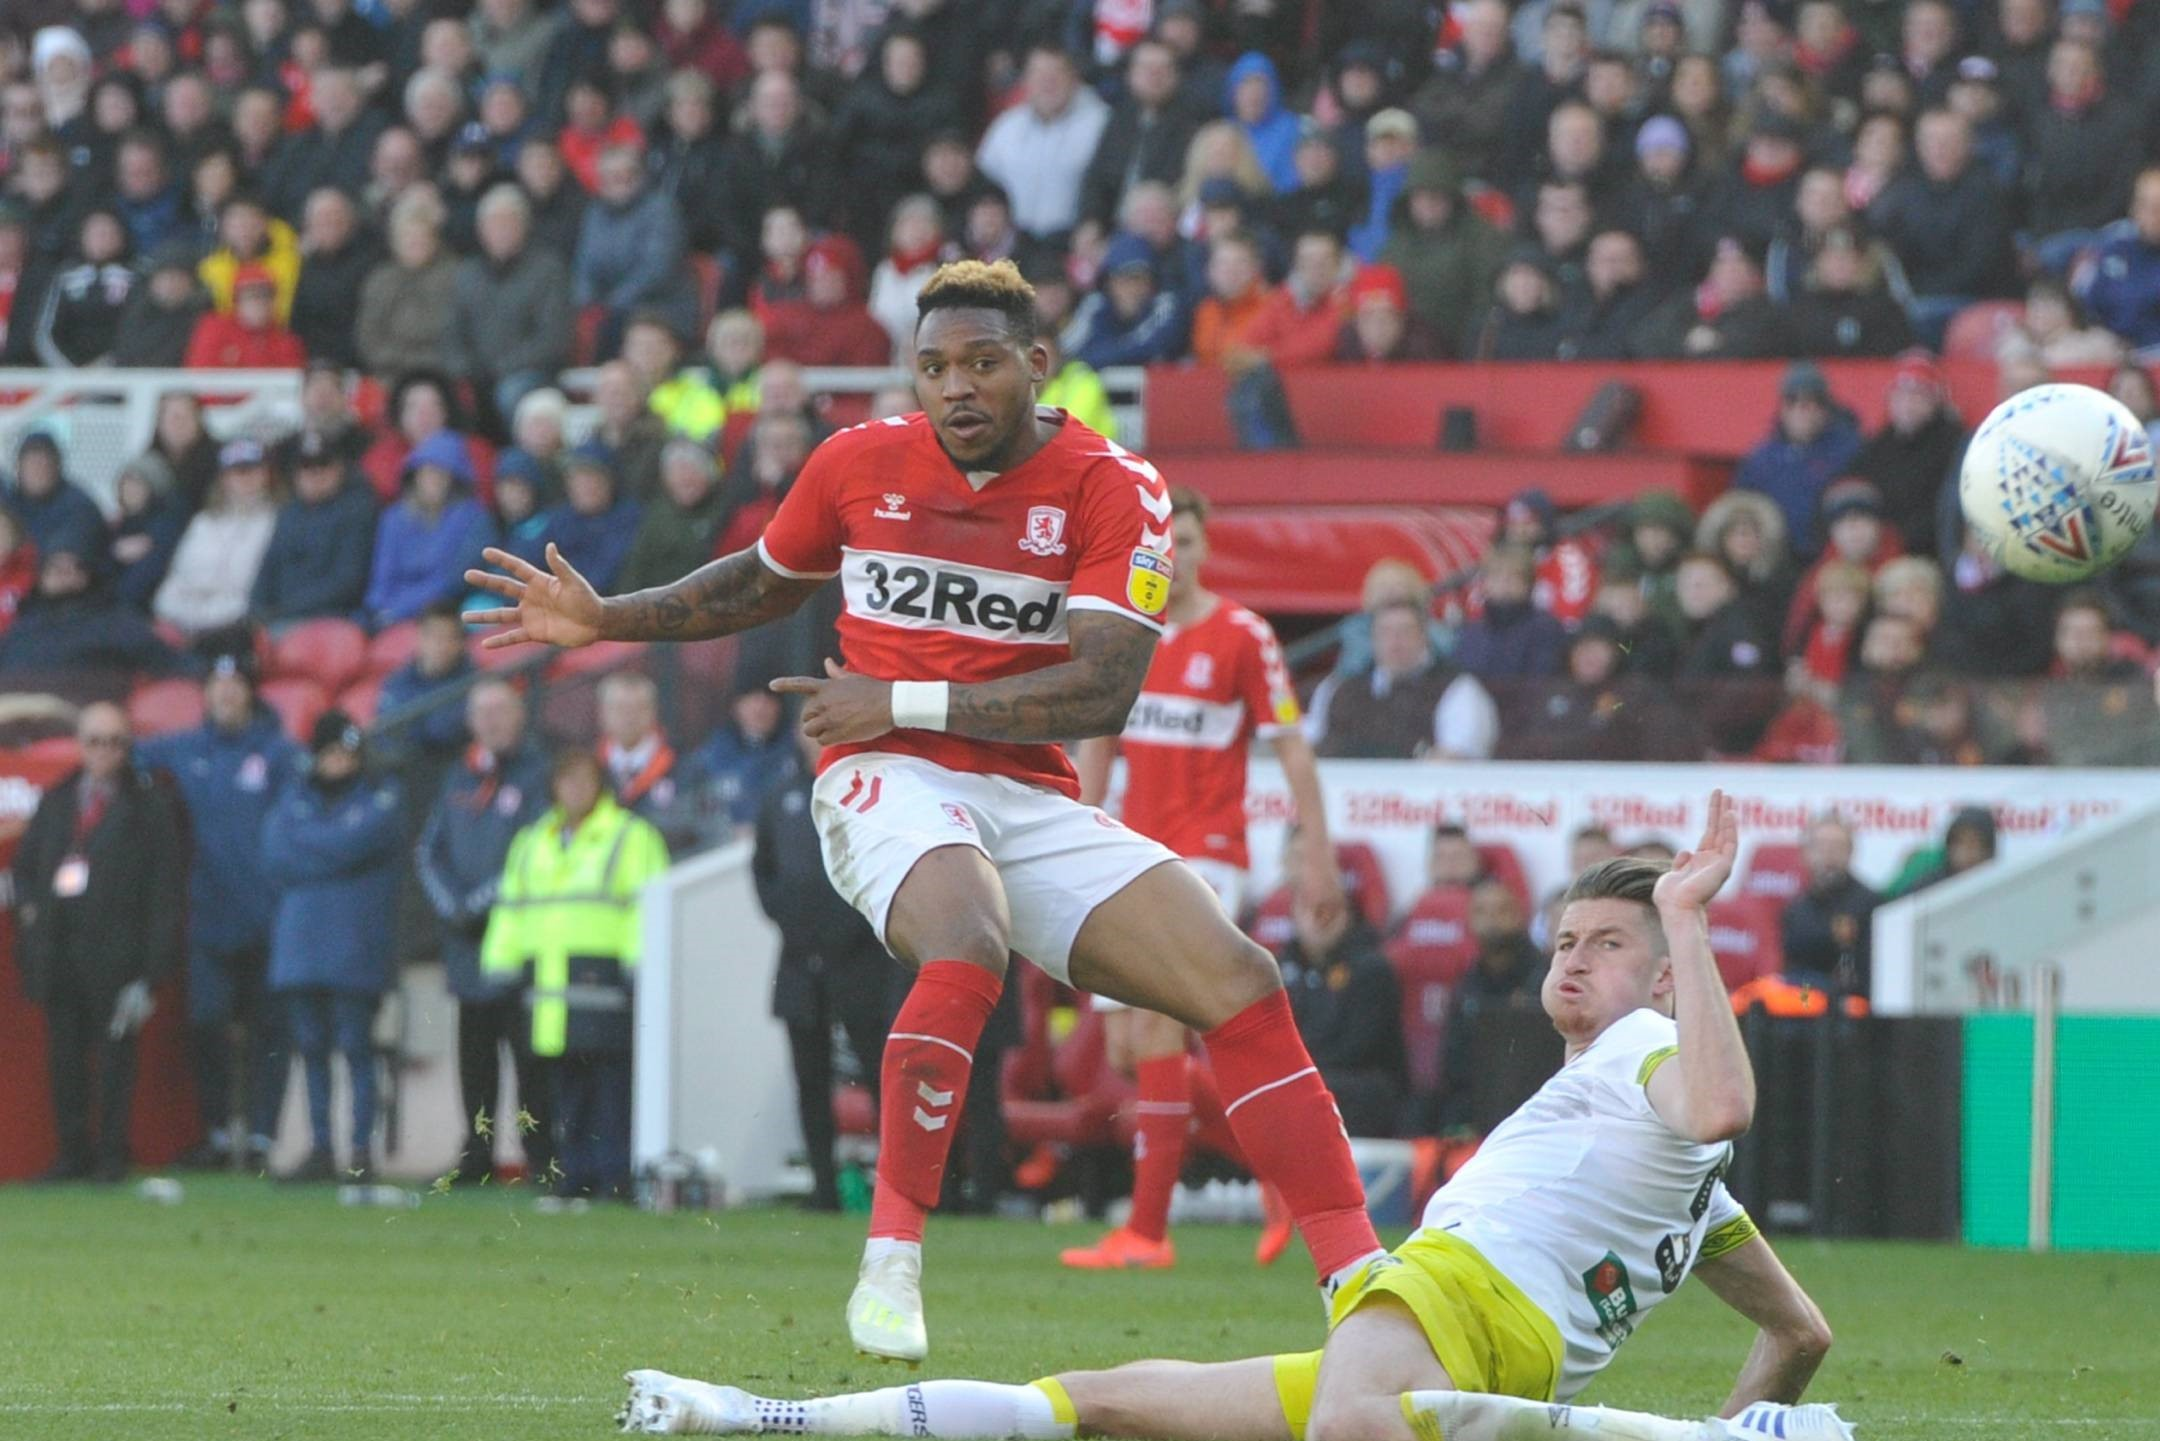 Play-off hopes still alive after Boro beat nerves